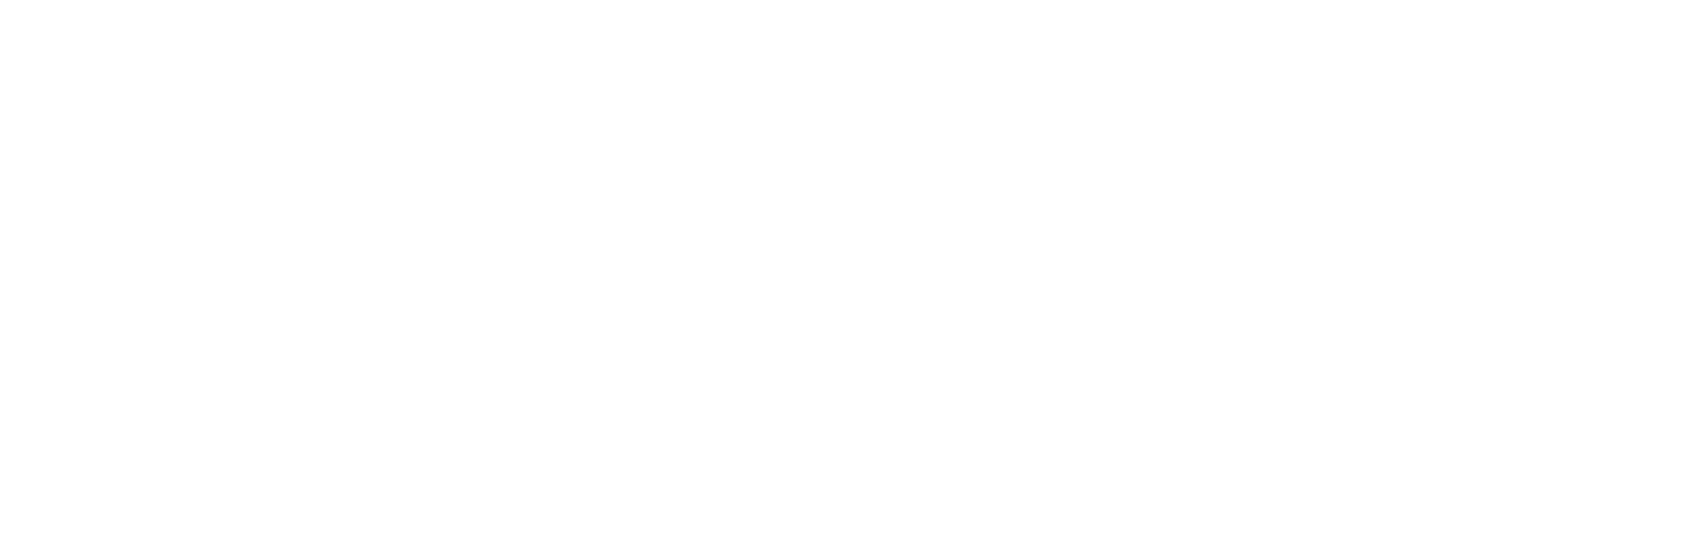 Voices that Shake!